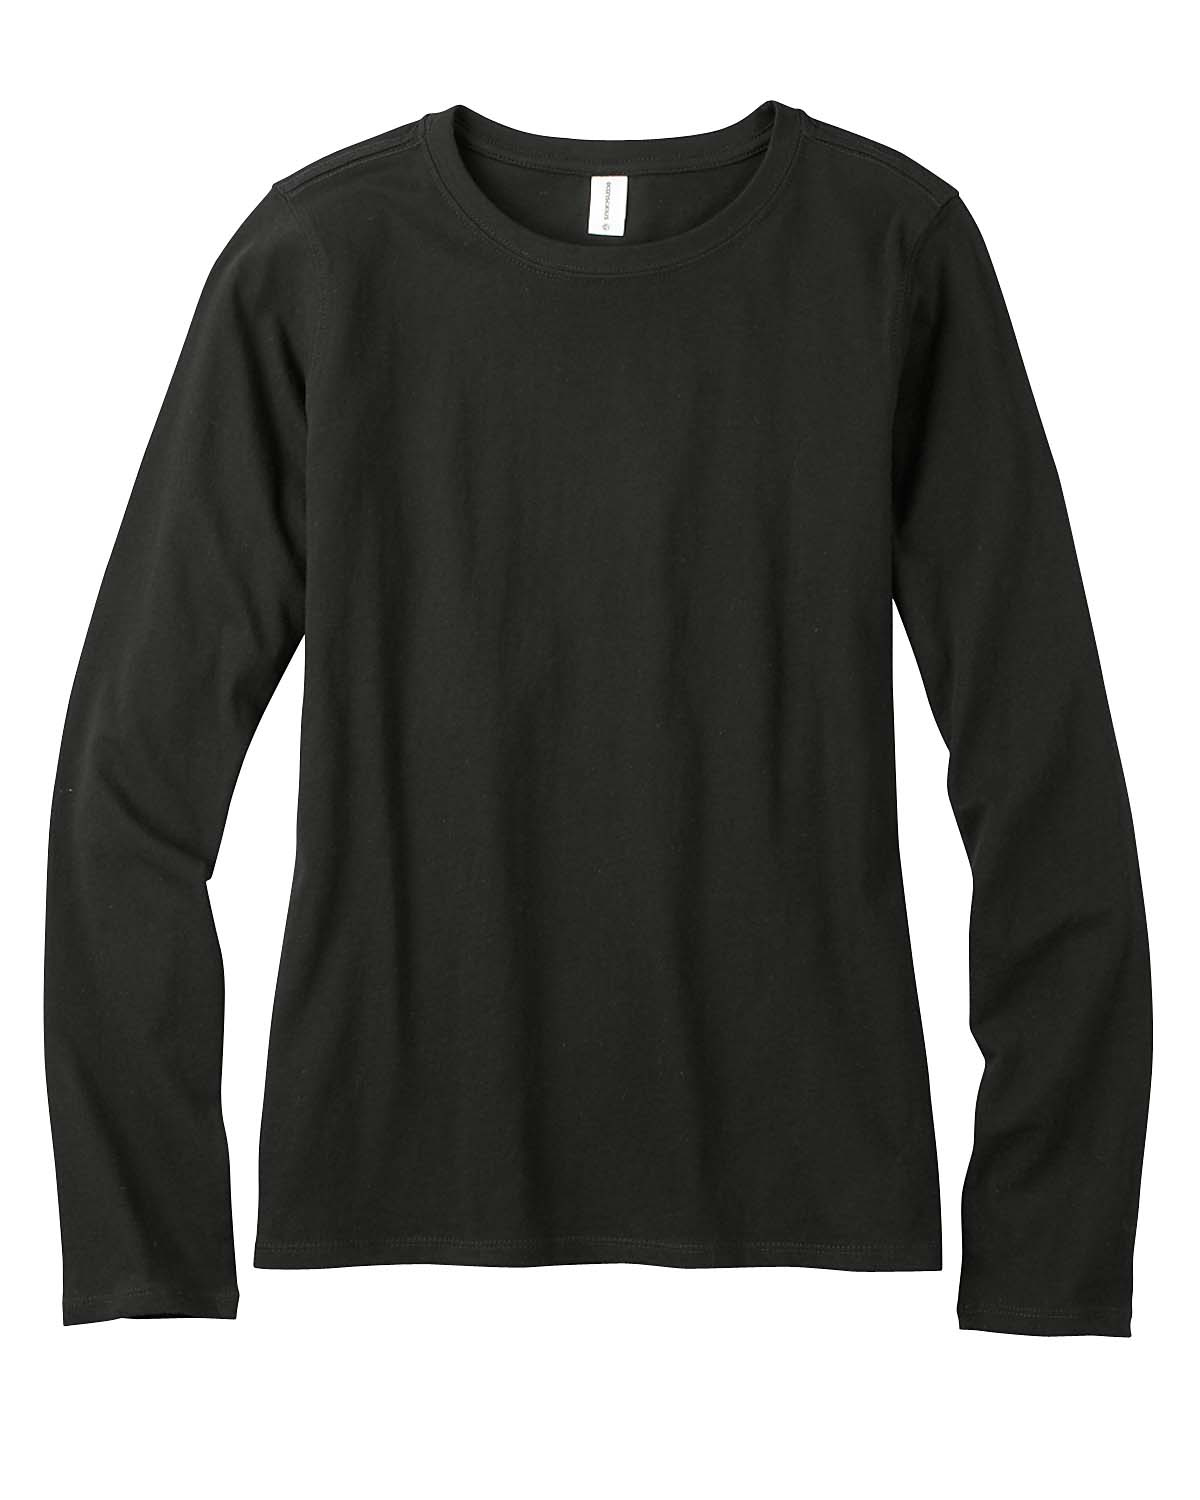 econscious_EC3500_Black_Womens_Organic_Cotton_Long_Sleeve_T-Shirt